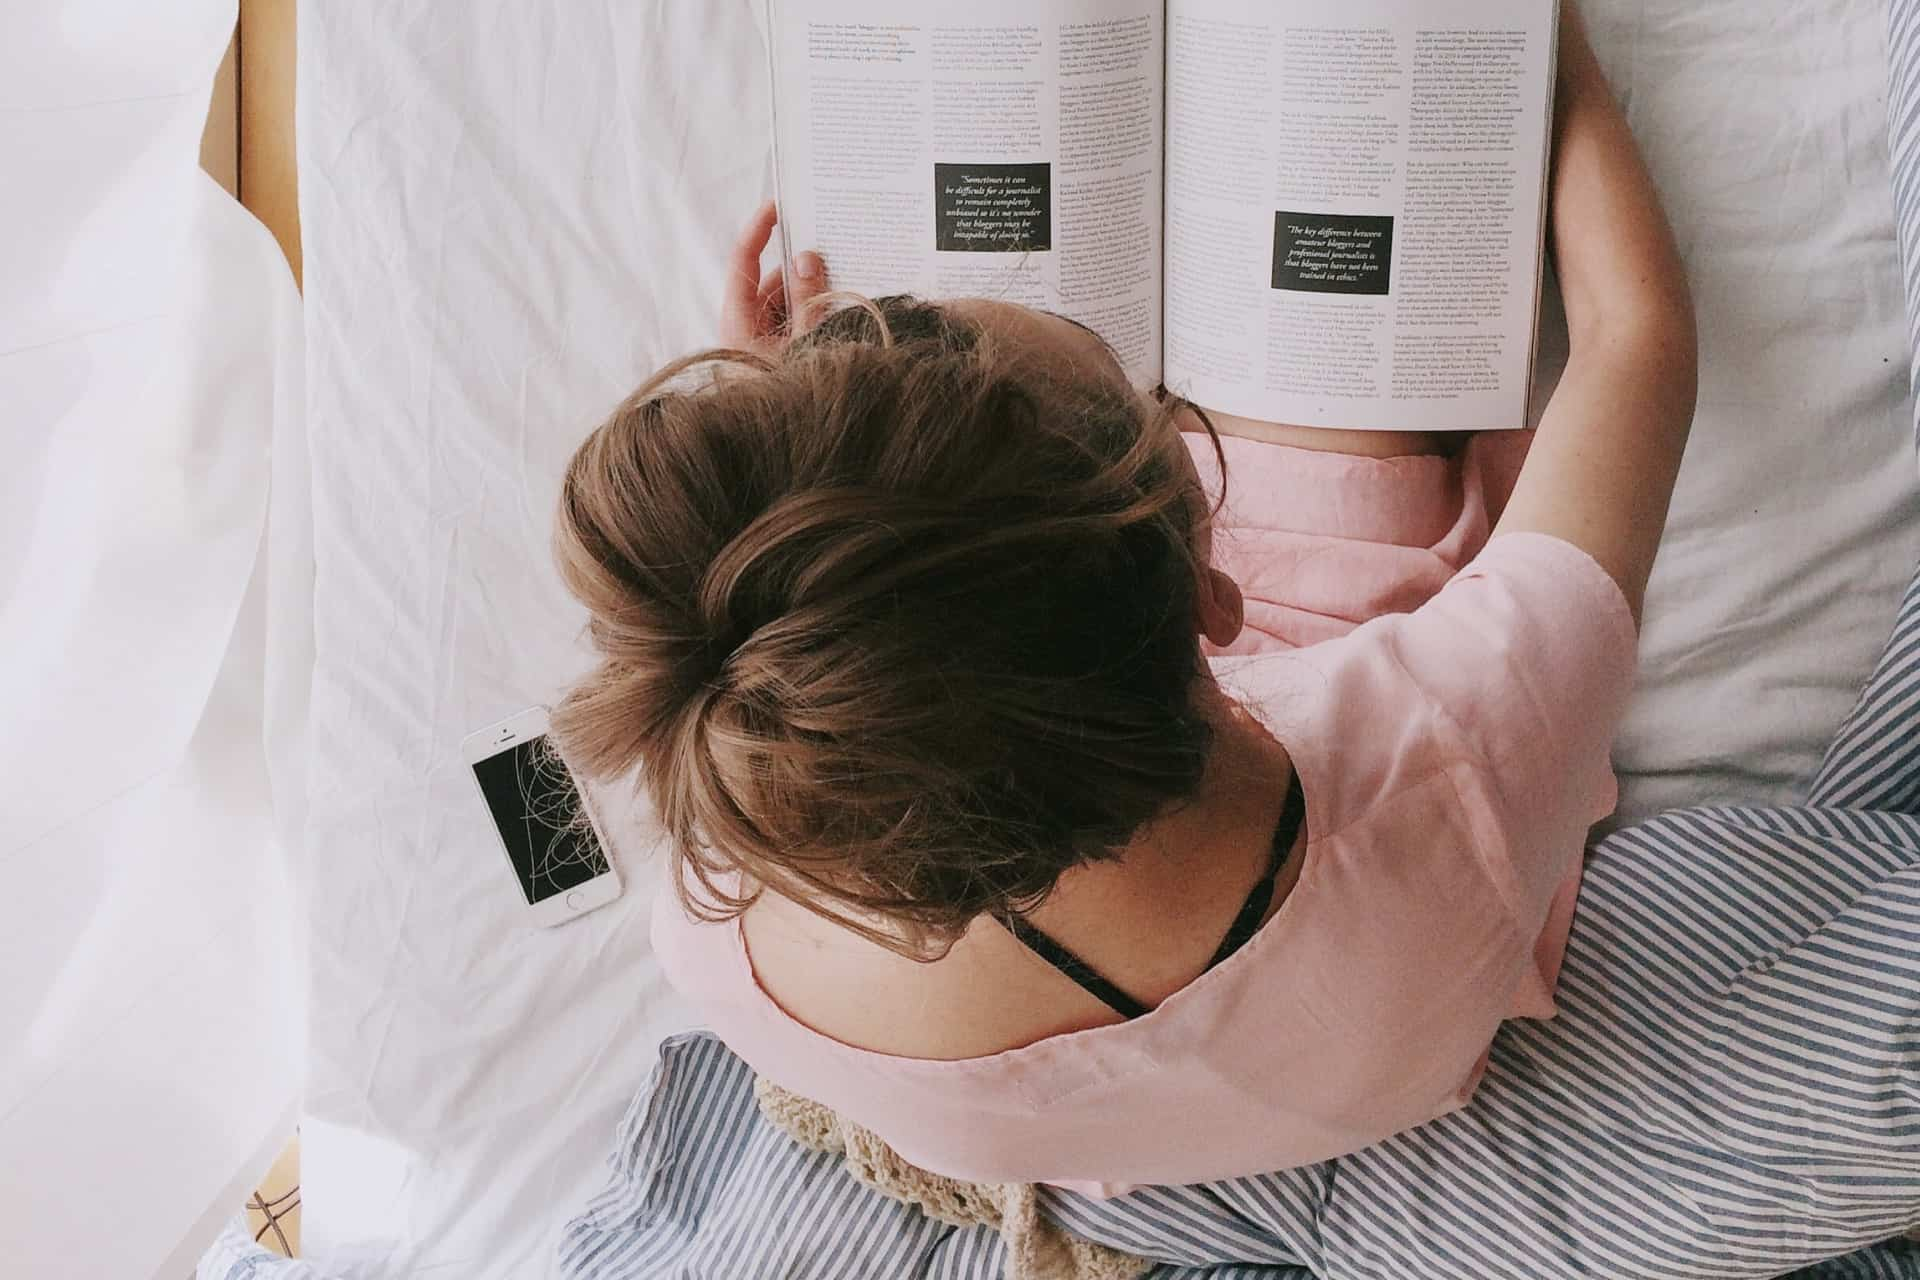 woman in pink dress sitting on bed while reading 698158 - 5 ways to relax and reconnect with yourself during quarantine